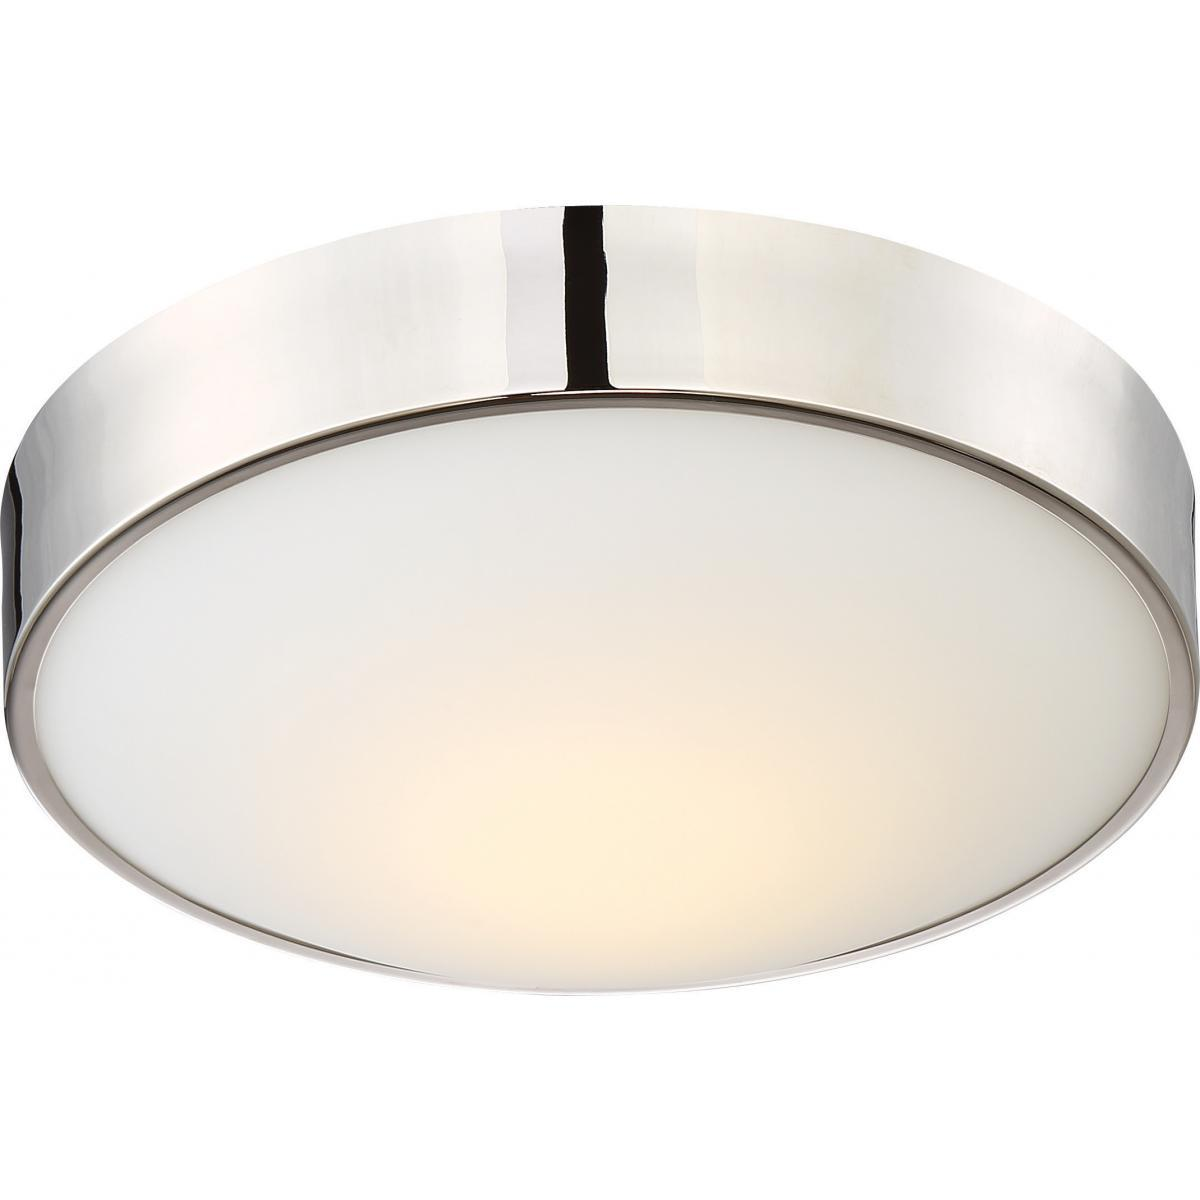 "Perk 13"" LED Flush with White Glass Ceiling Nuvo Lighting"